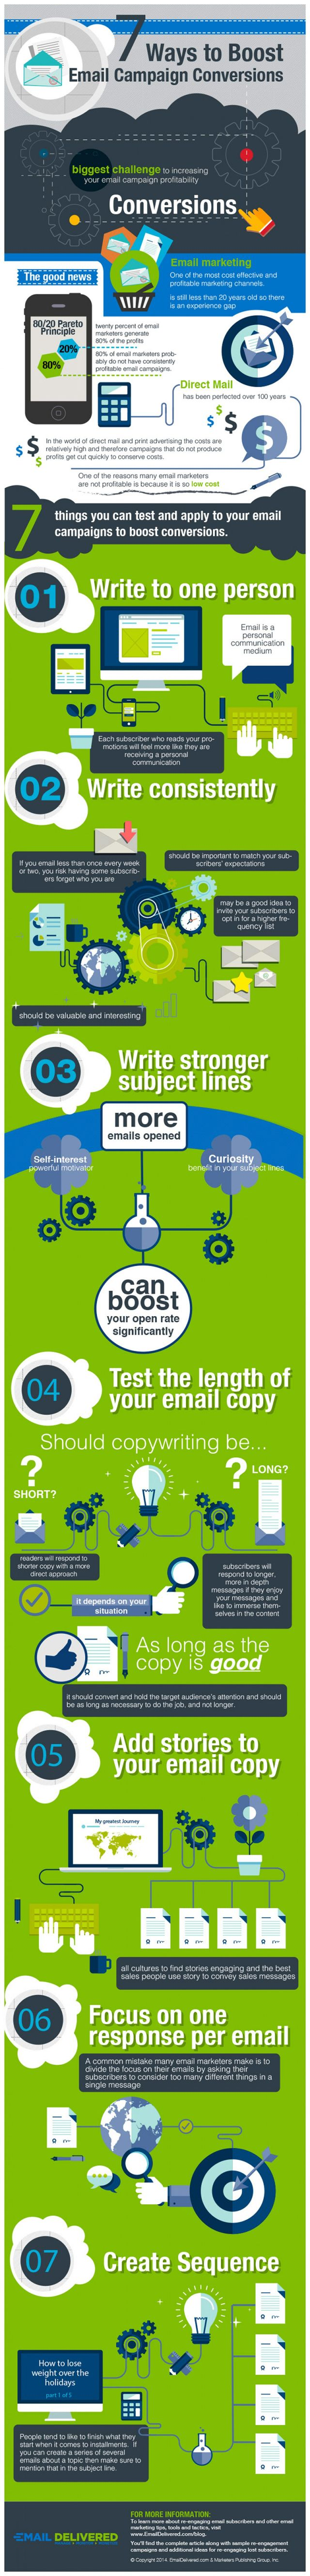 7 Ways to Boost Conversions on Your Email Marketing Campaign #Infographic - http://nextlevelinternetmarketing.com